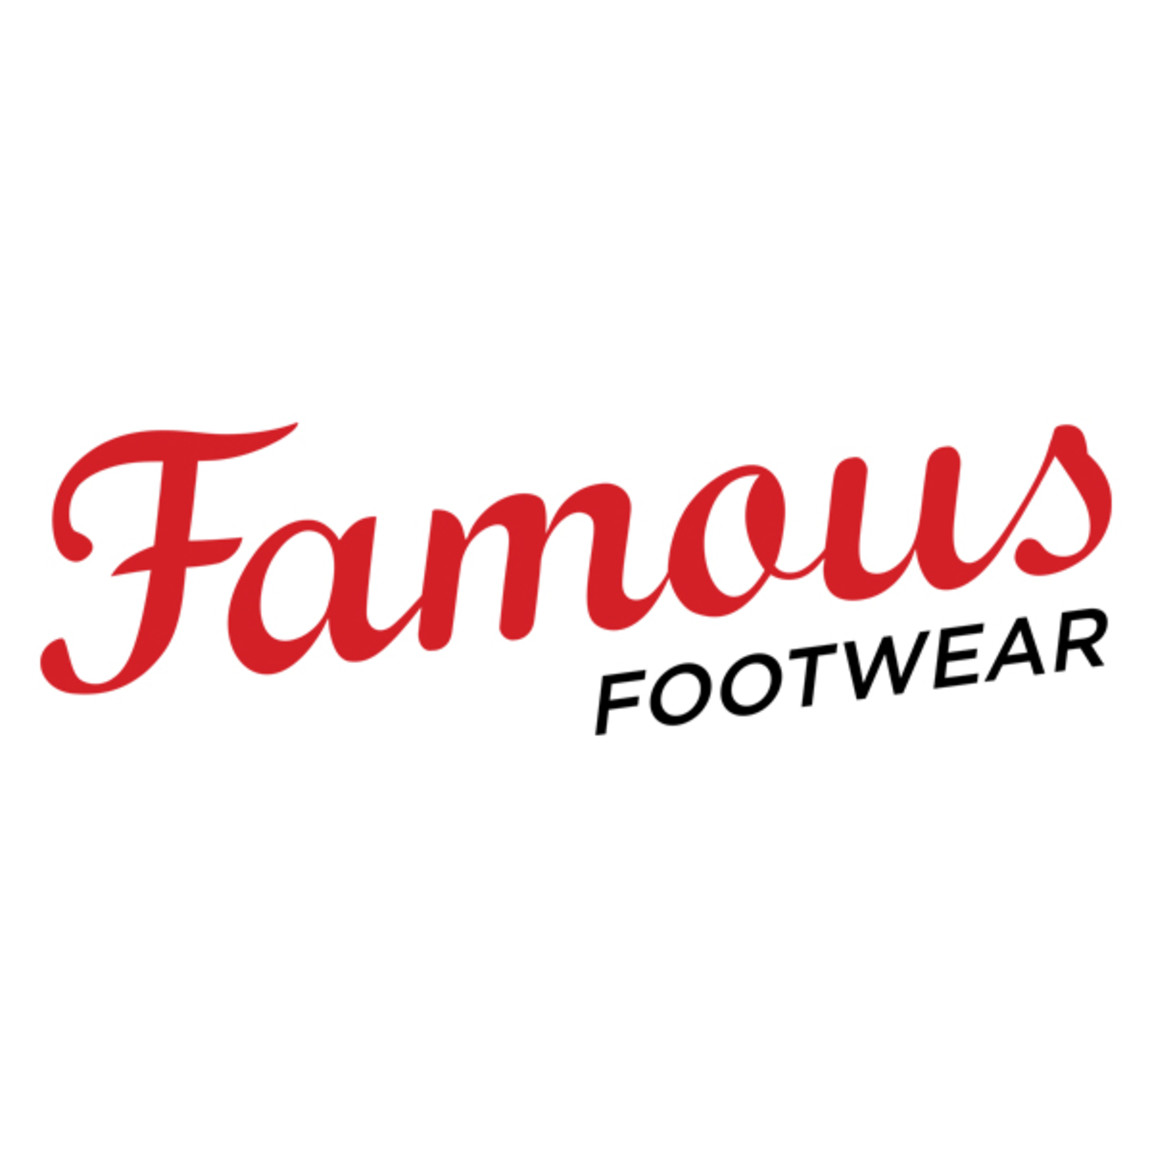 Famous footwear human resources phone number